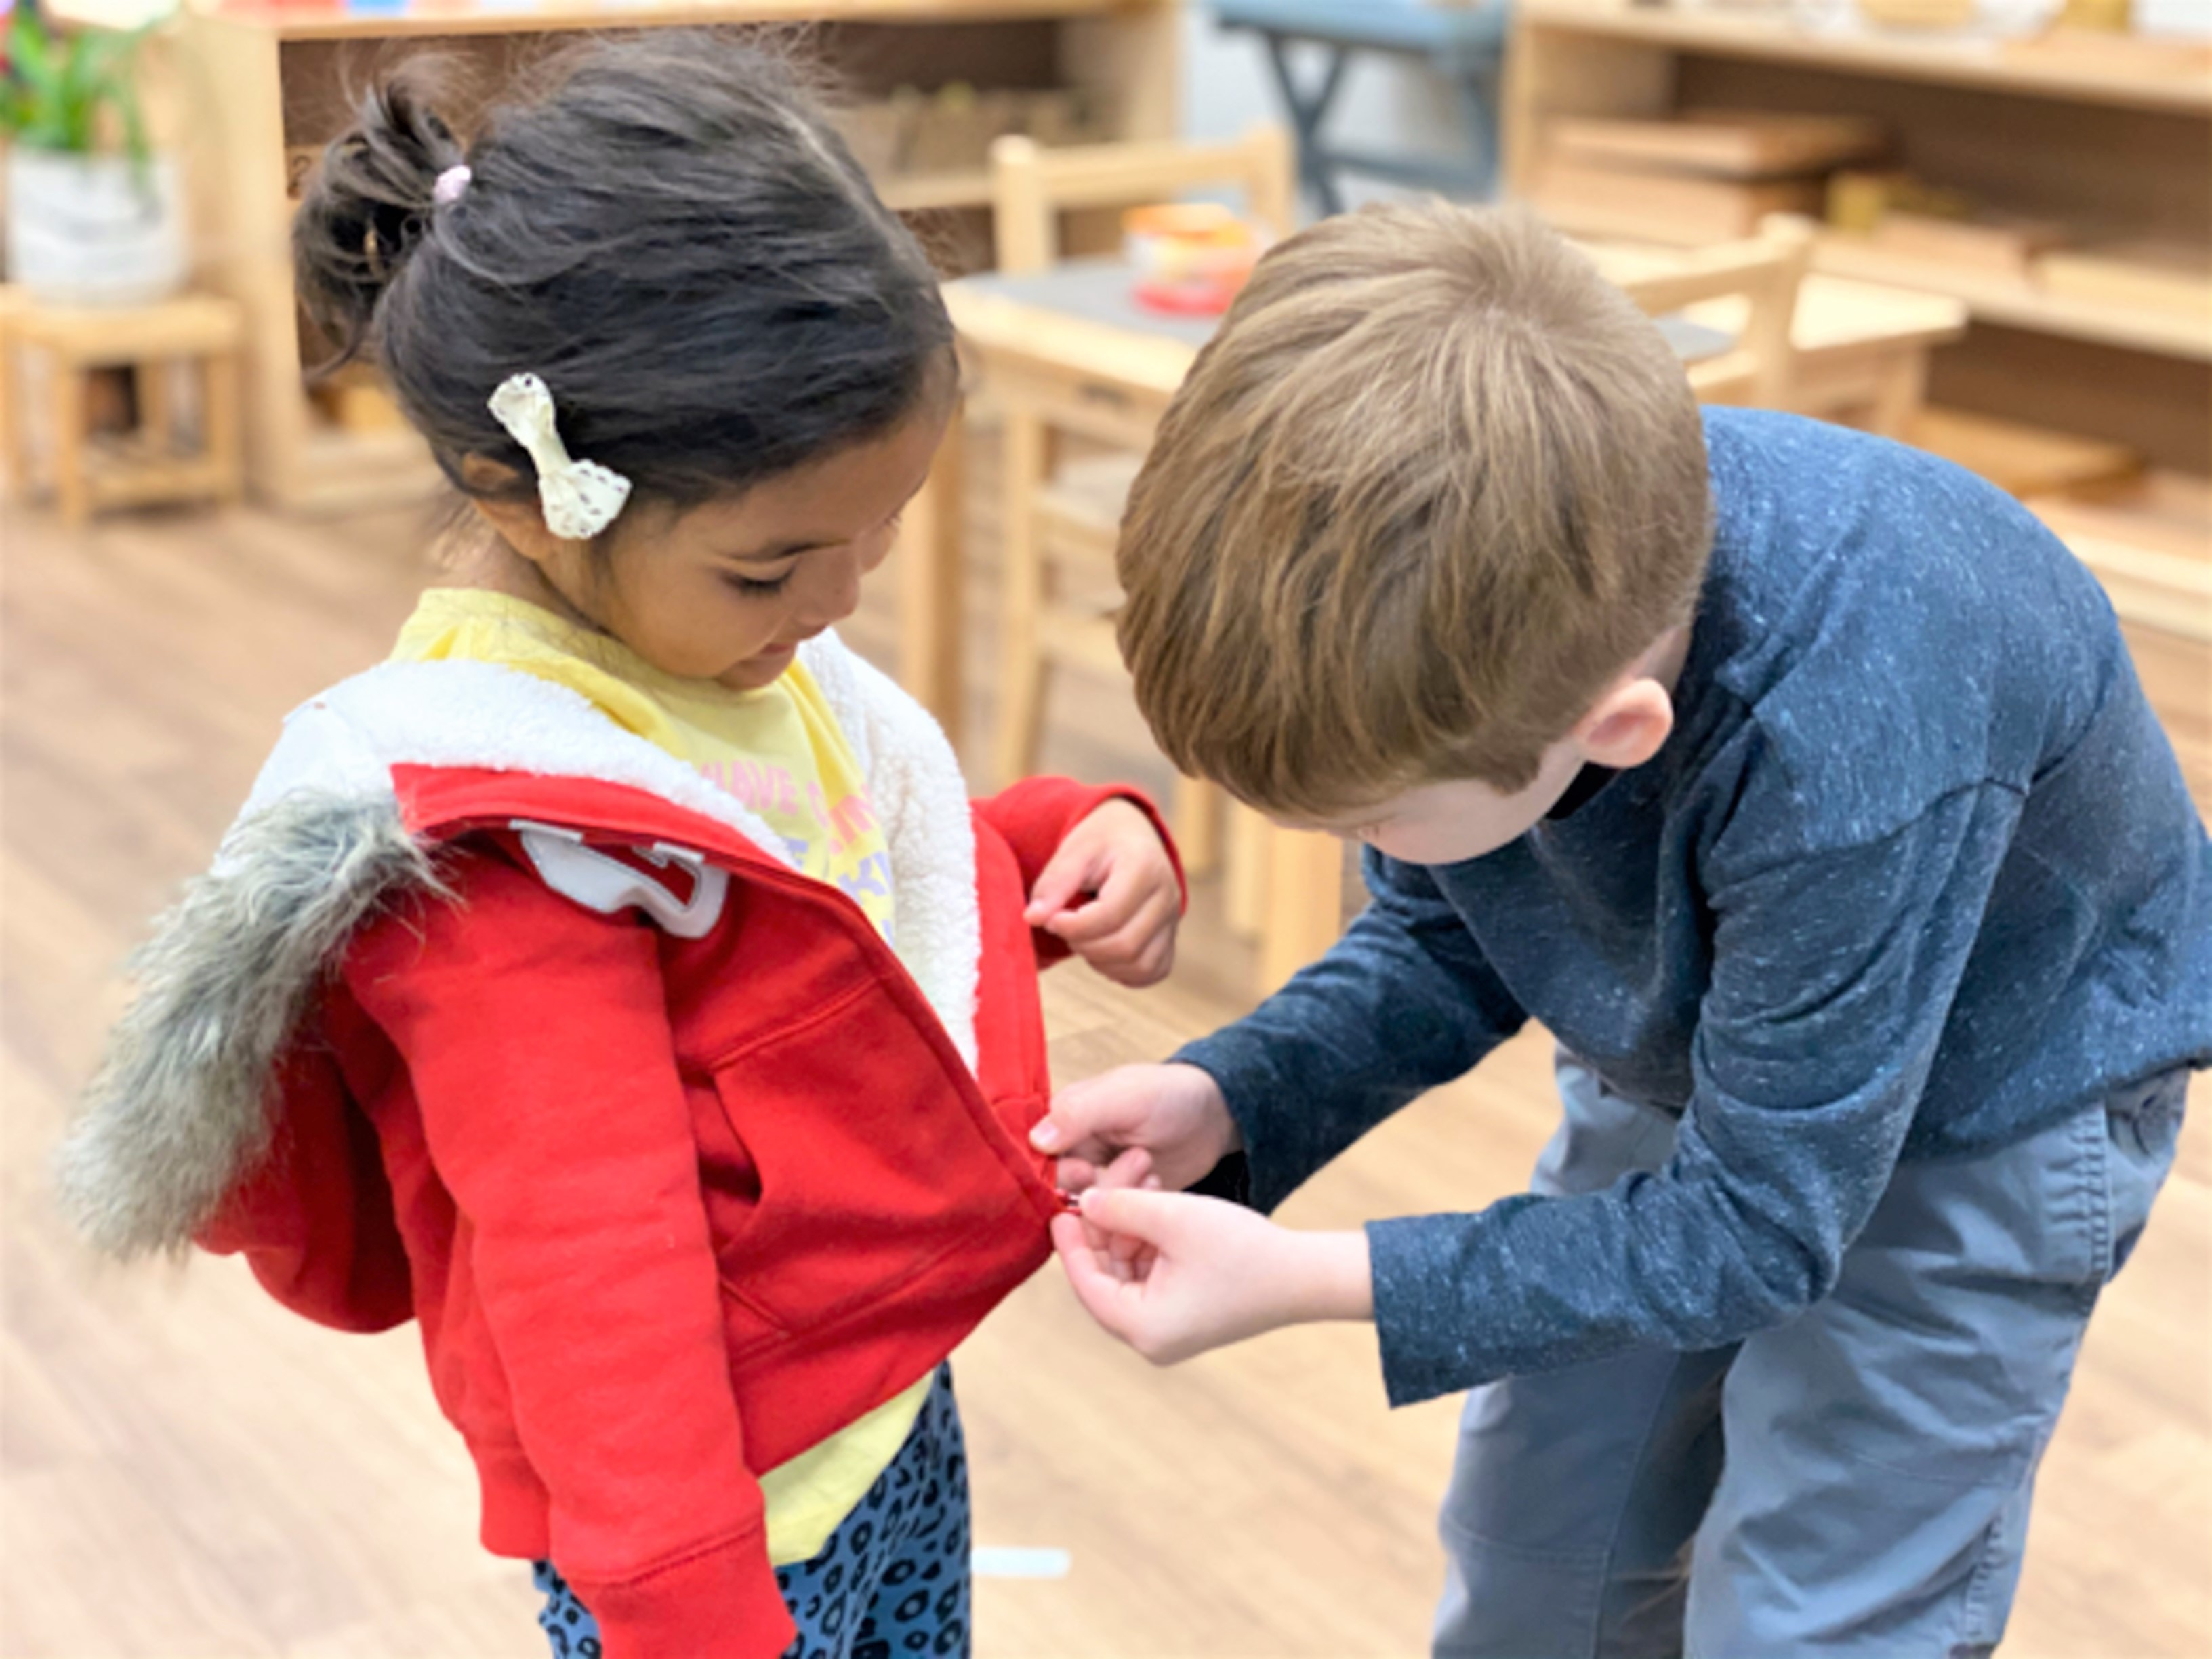 in a diverse and mixed-age classroom, an older boy helps a younger girl zip her jacket